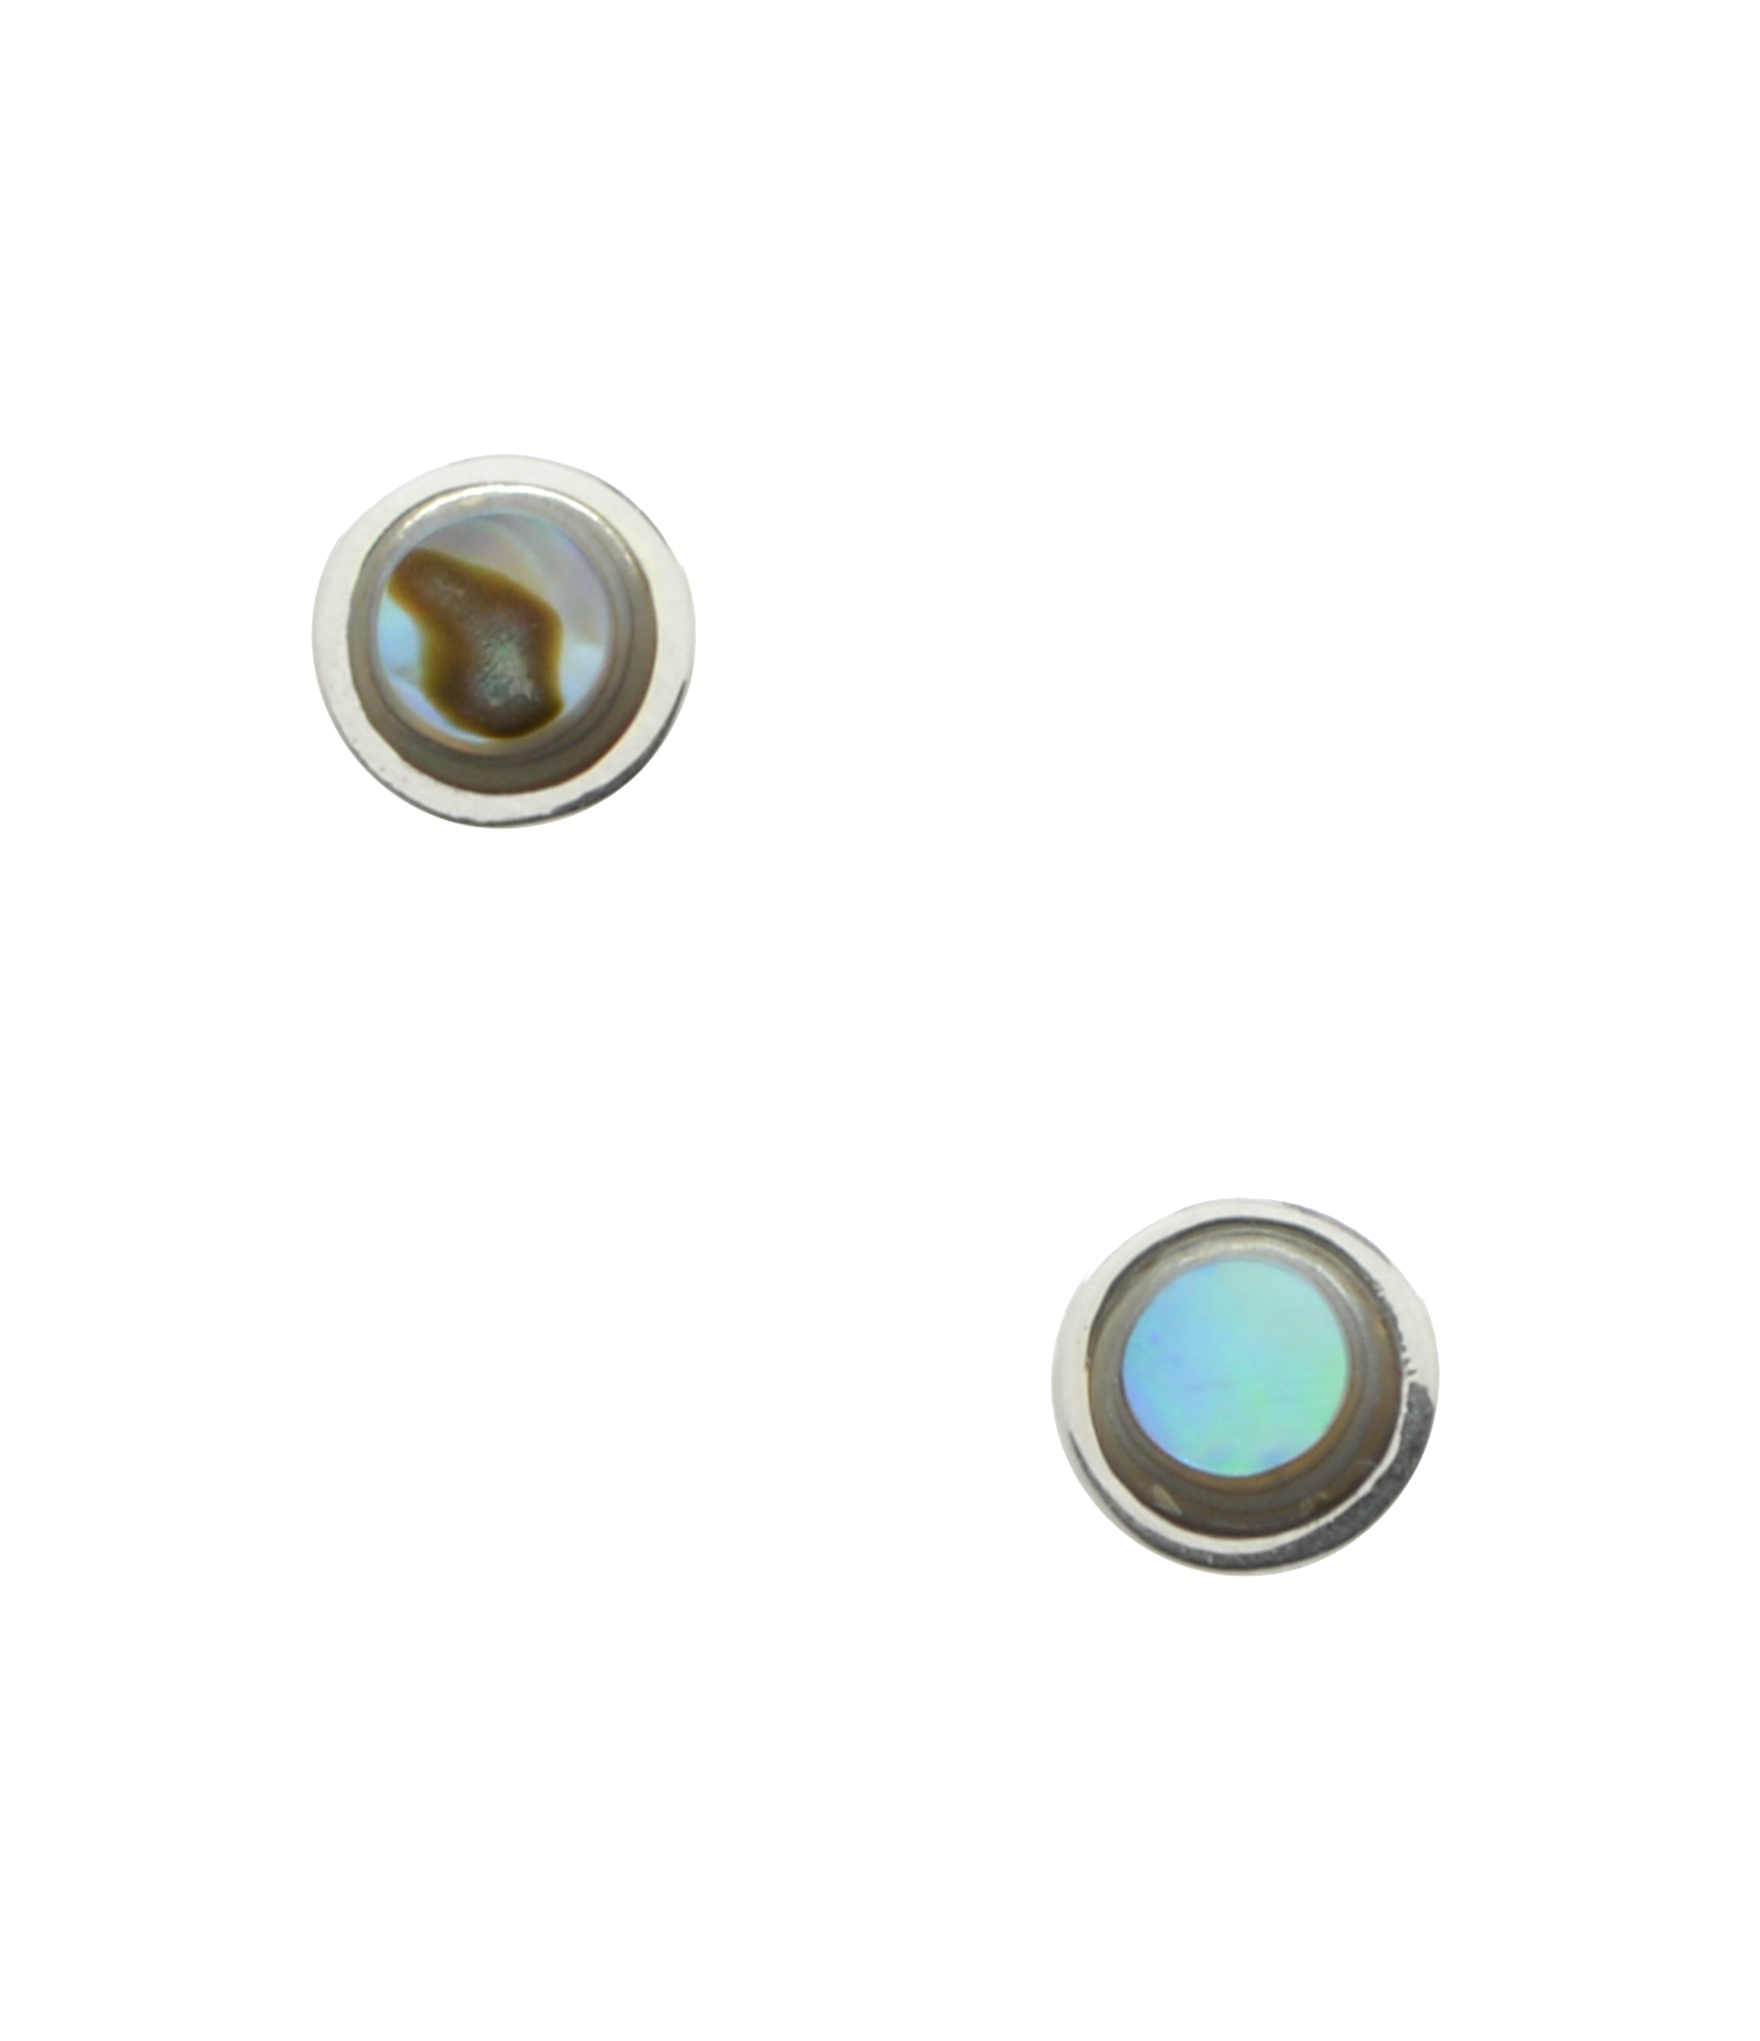 stud products khun seashell and in cute heart accents se square artisan jai trendy which designed this comes beautiful oval earrings silver details round abalone ov inlay piece inlaid aeravida stone